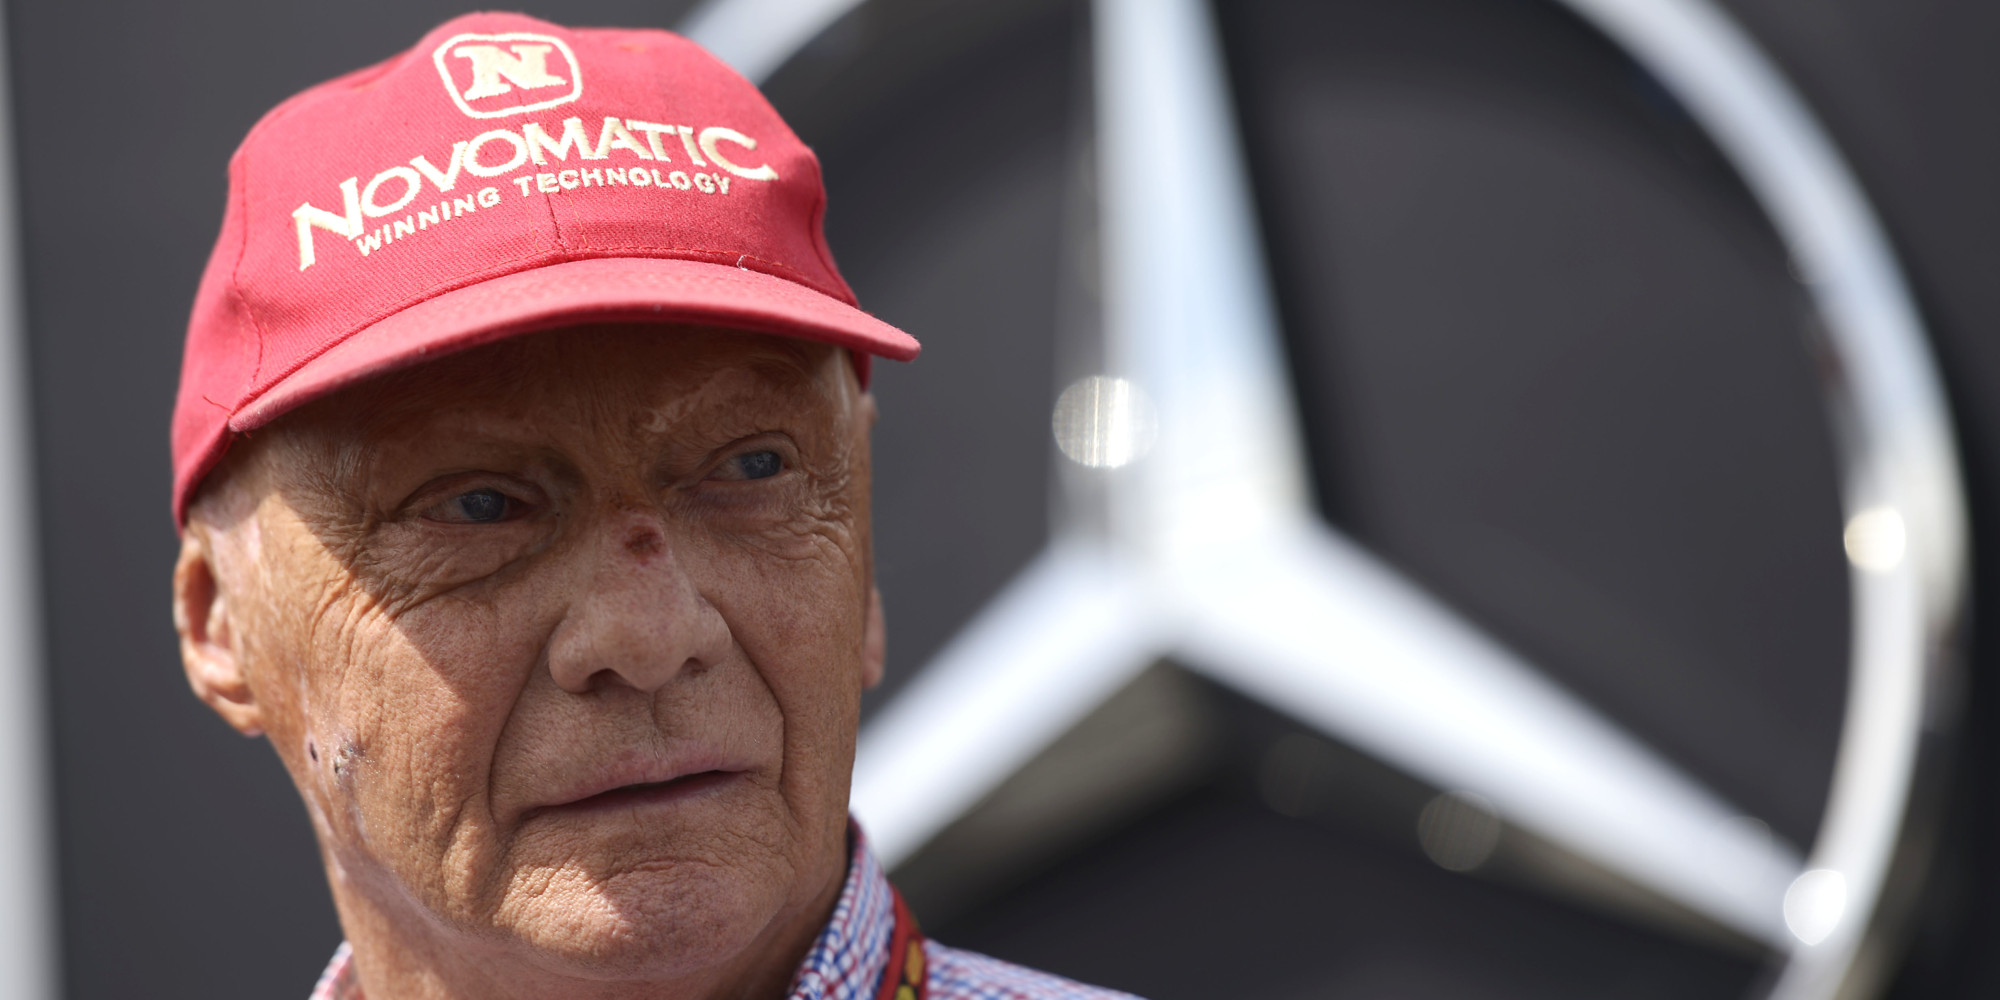 niki lauda apologises for 39 s ferrari 39 comment huffpost uk. Black Bedroom Furniture Sets. Home Design Ideas